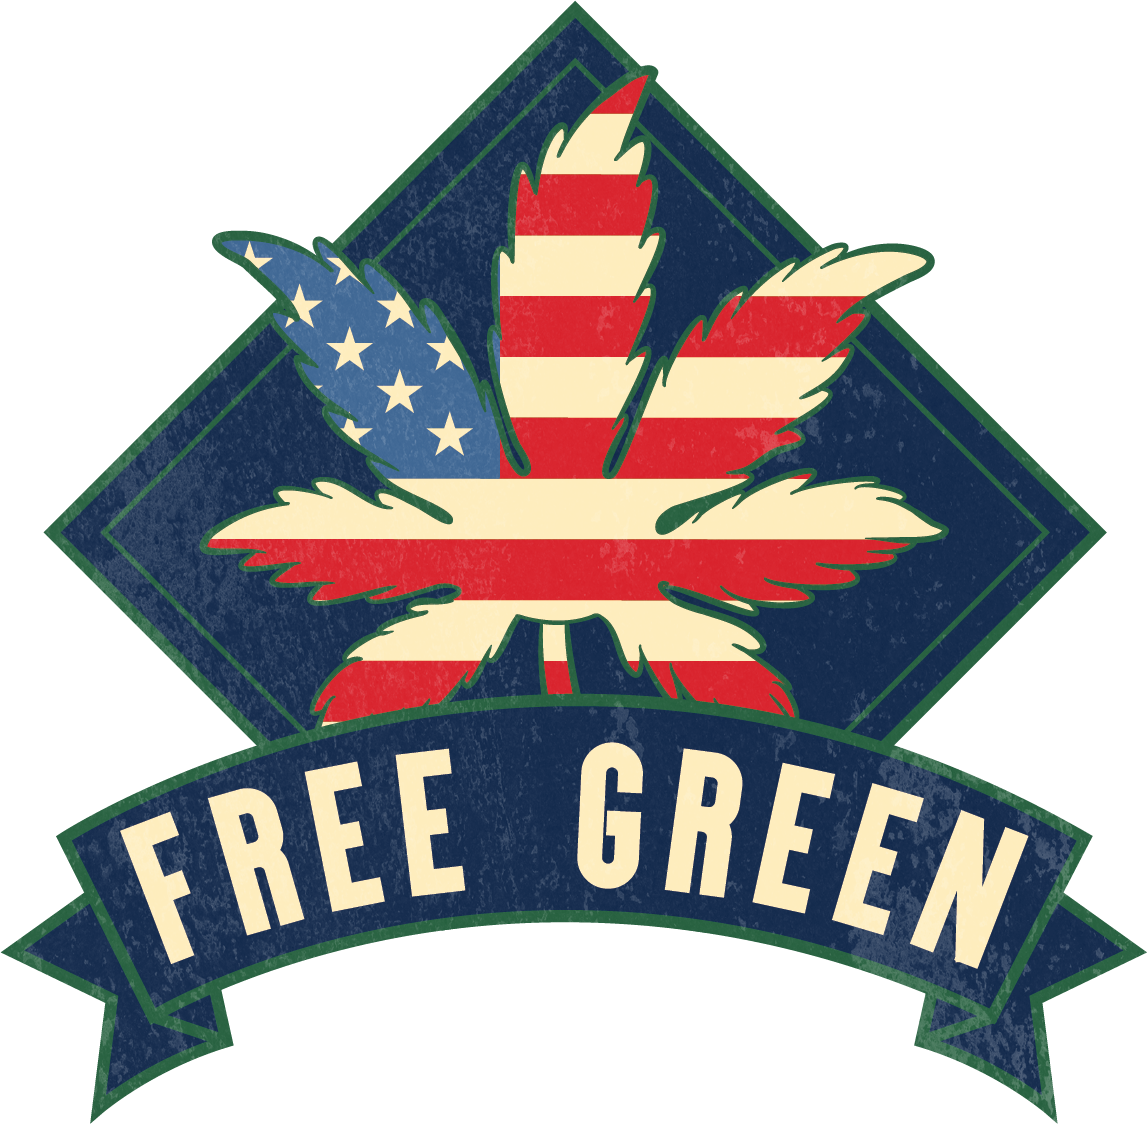 Free Green Michigan